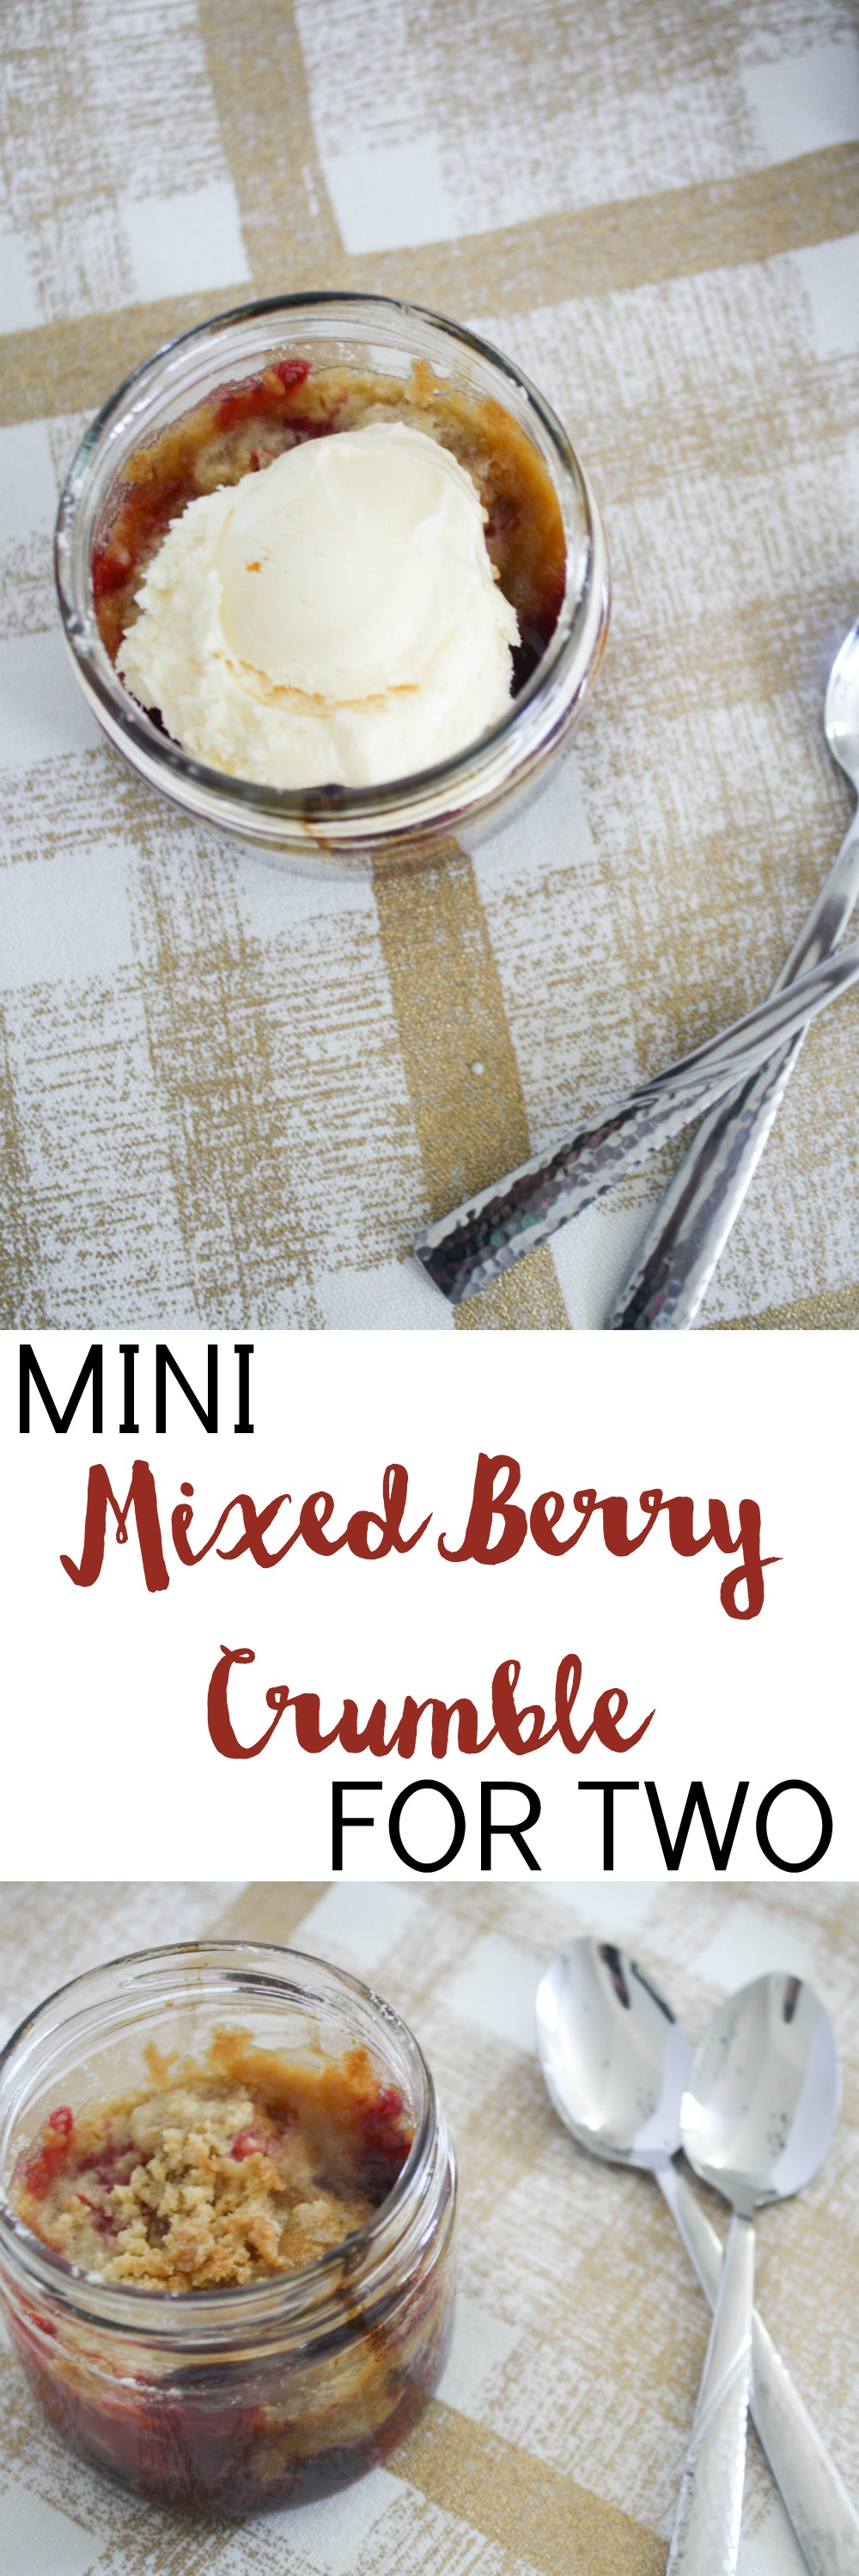 This easy dessert is just the right portion size for two! Mini Mixed Berry Crumble for Two is just the thing for date night or sharing with a friend.